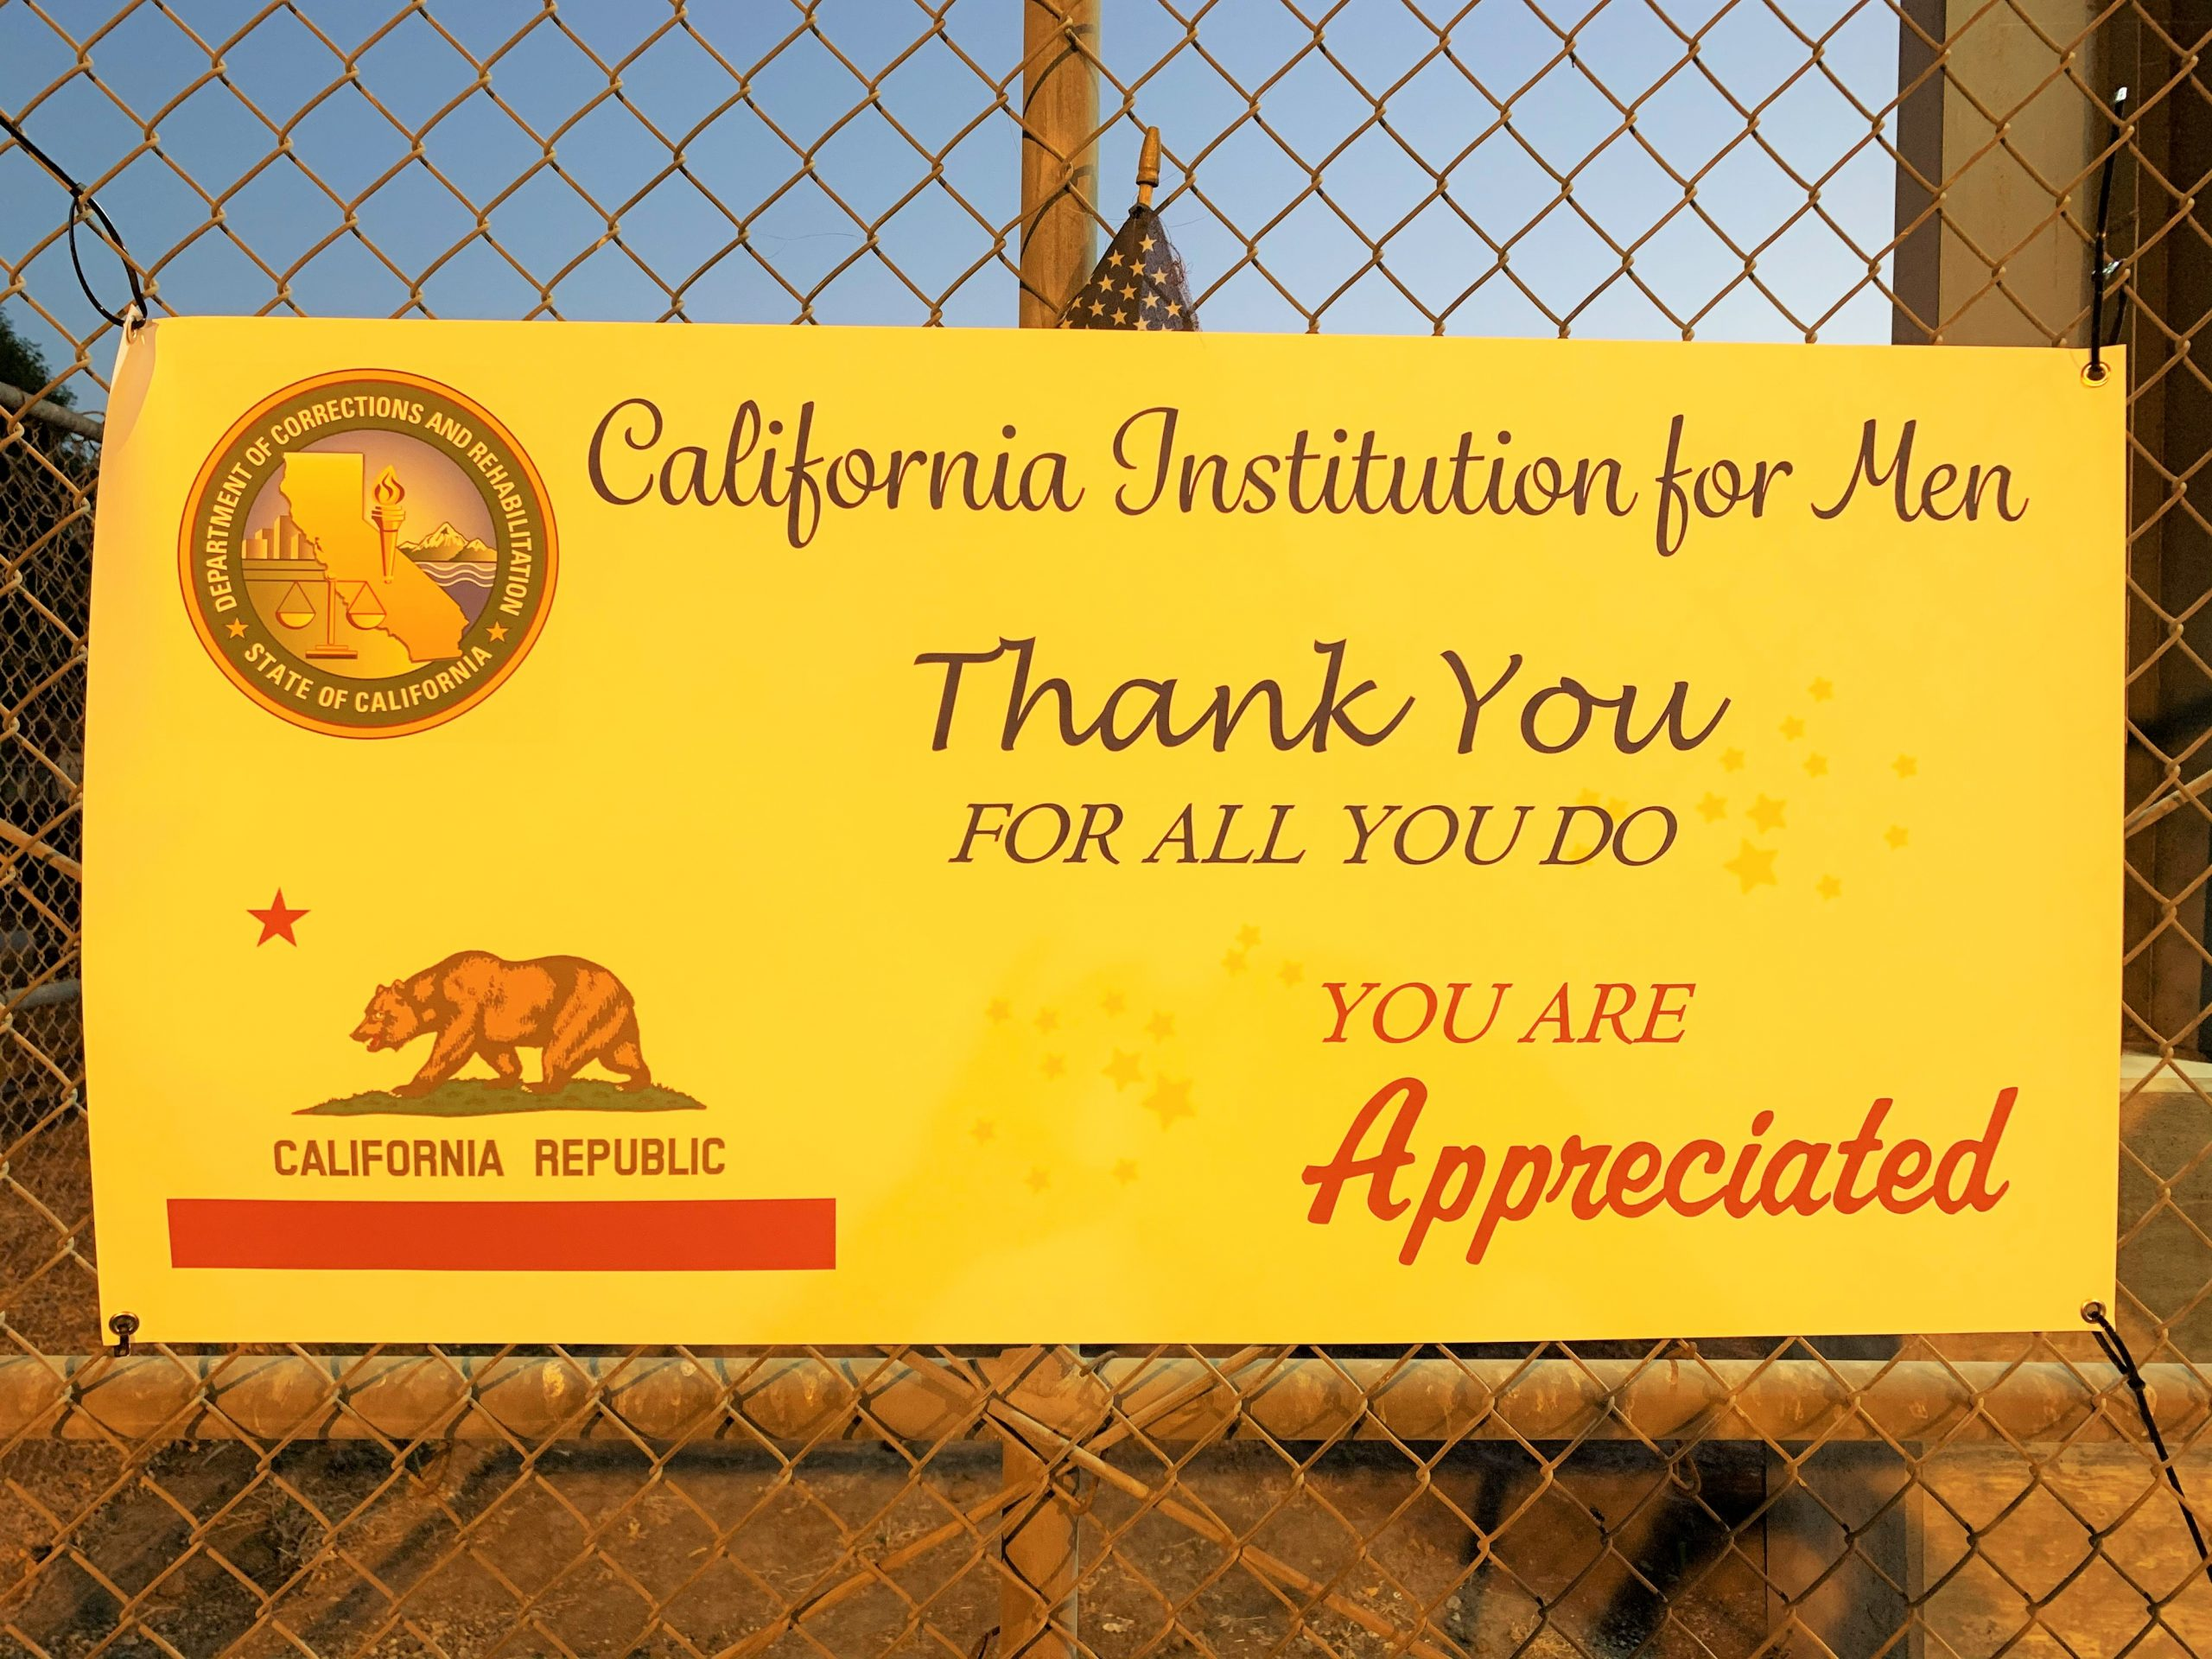 Sign hangs on a fence thanking staff at California Institution for Men.